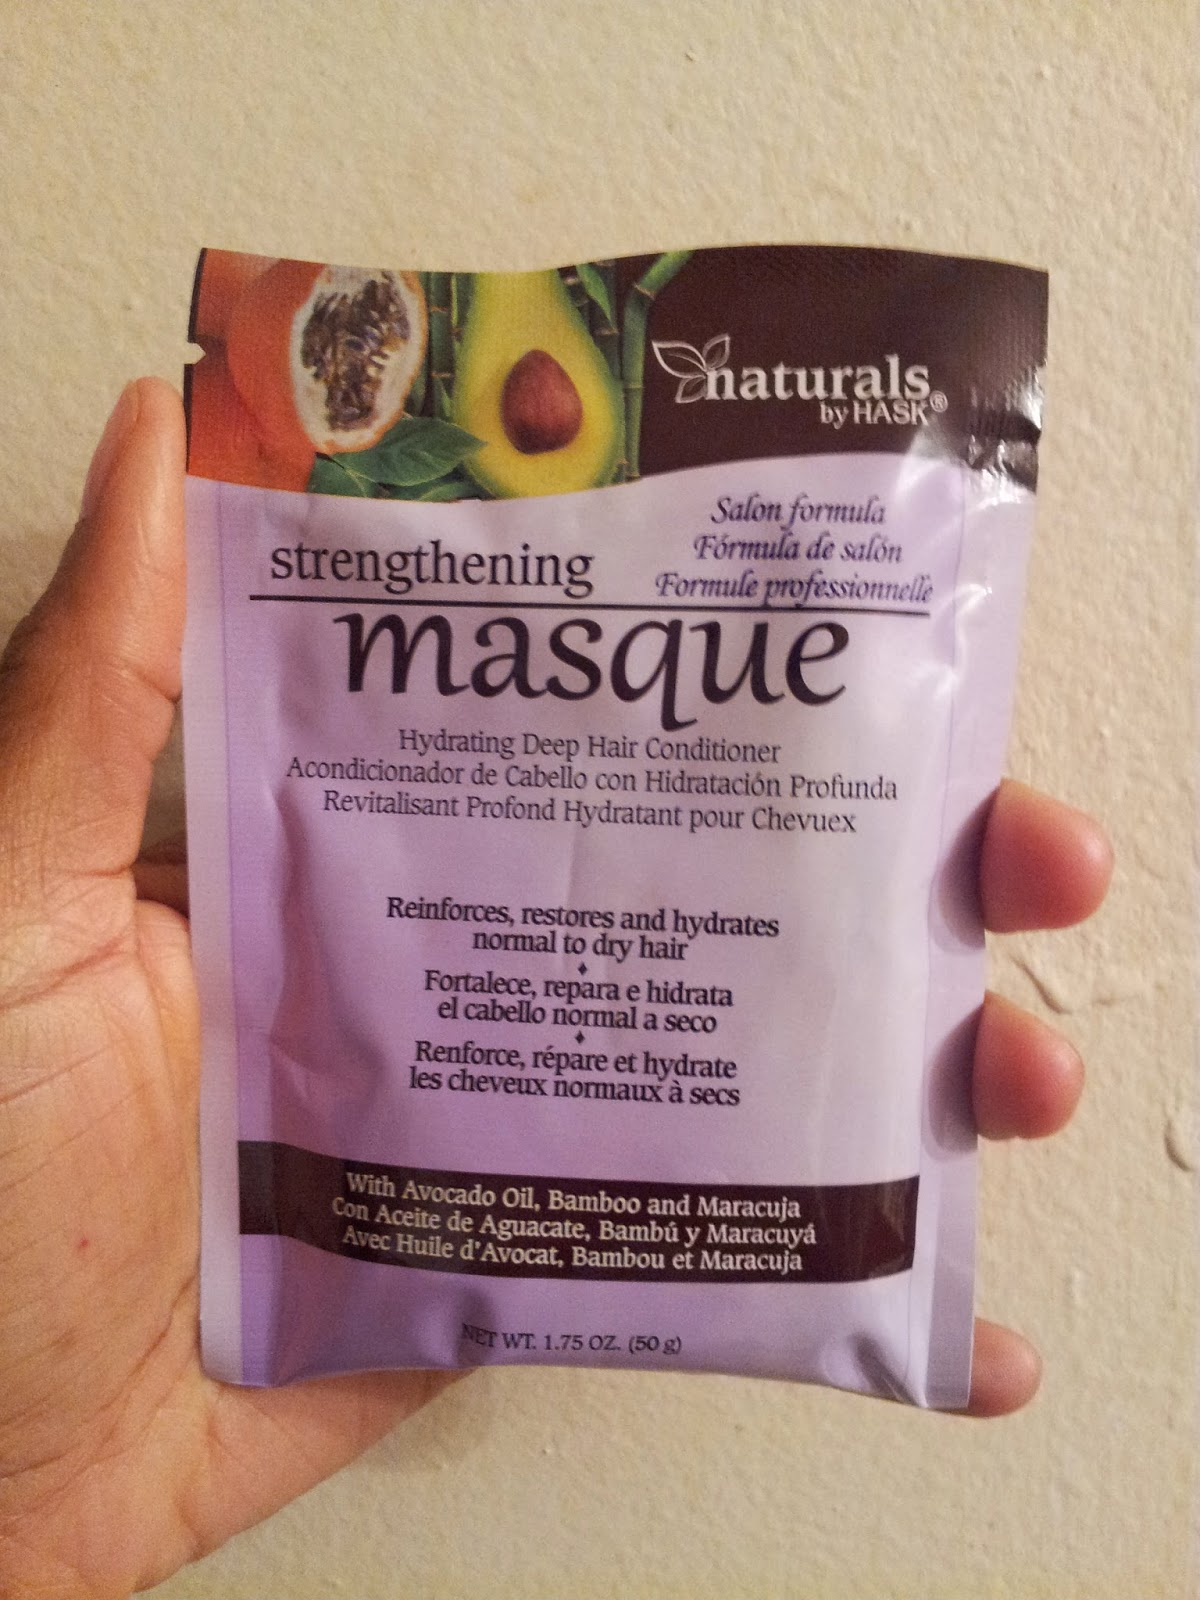 Naturals By Hask Strengthening Masque Reviews